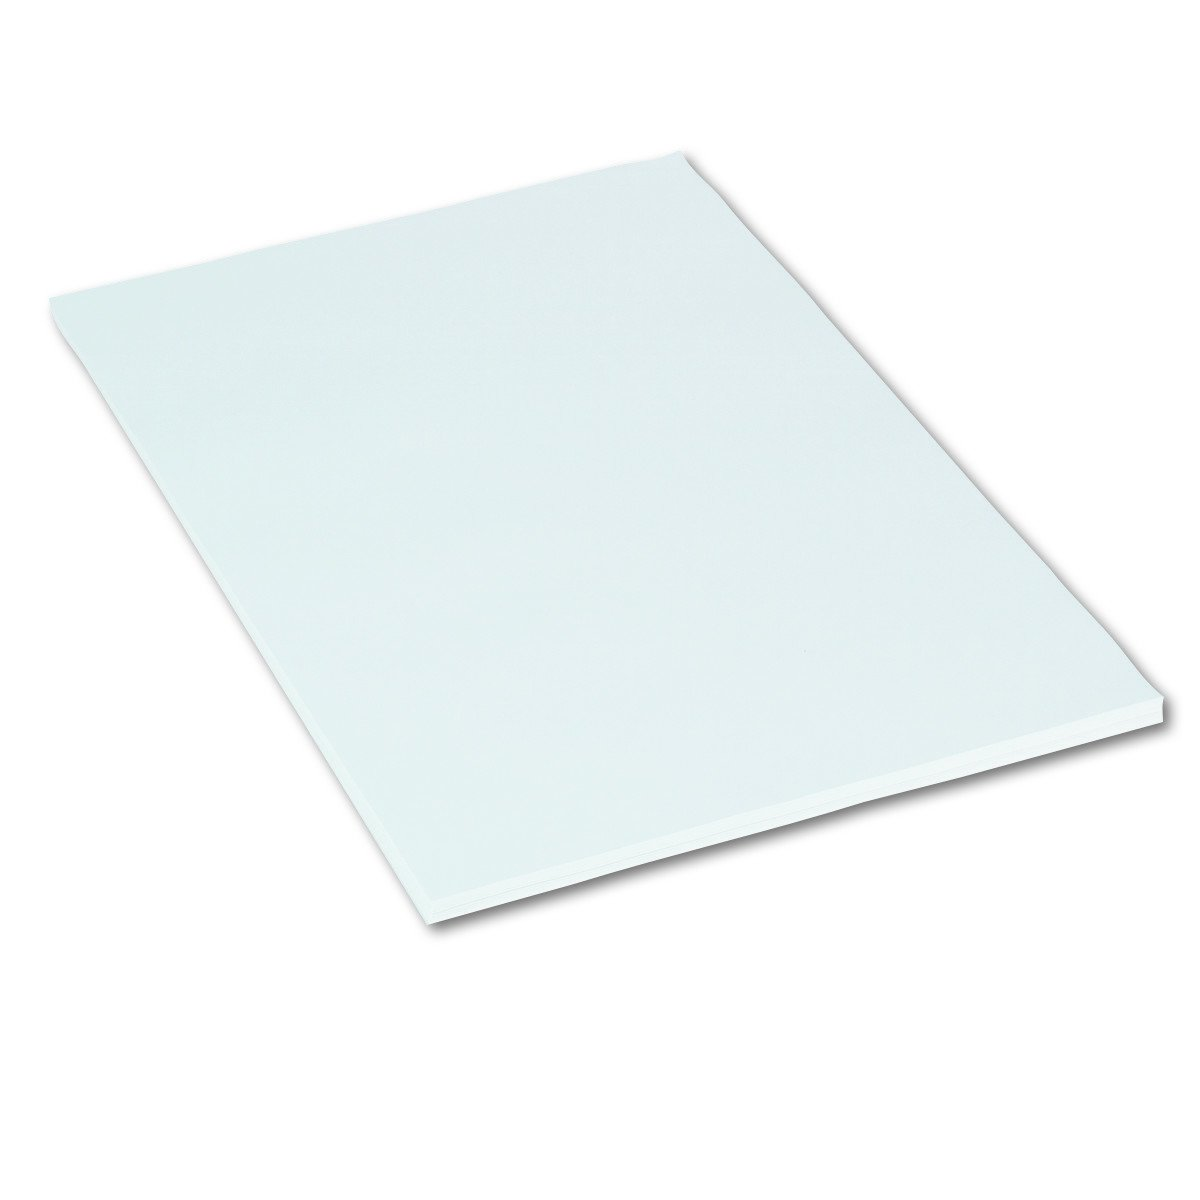 Pacon 5296 Medium Weight Tagboard, 36 x 24, White (Pack of 100)